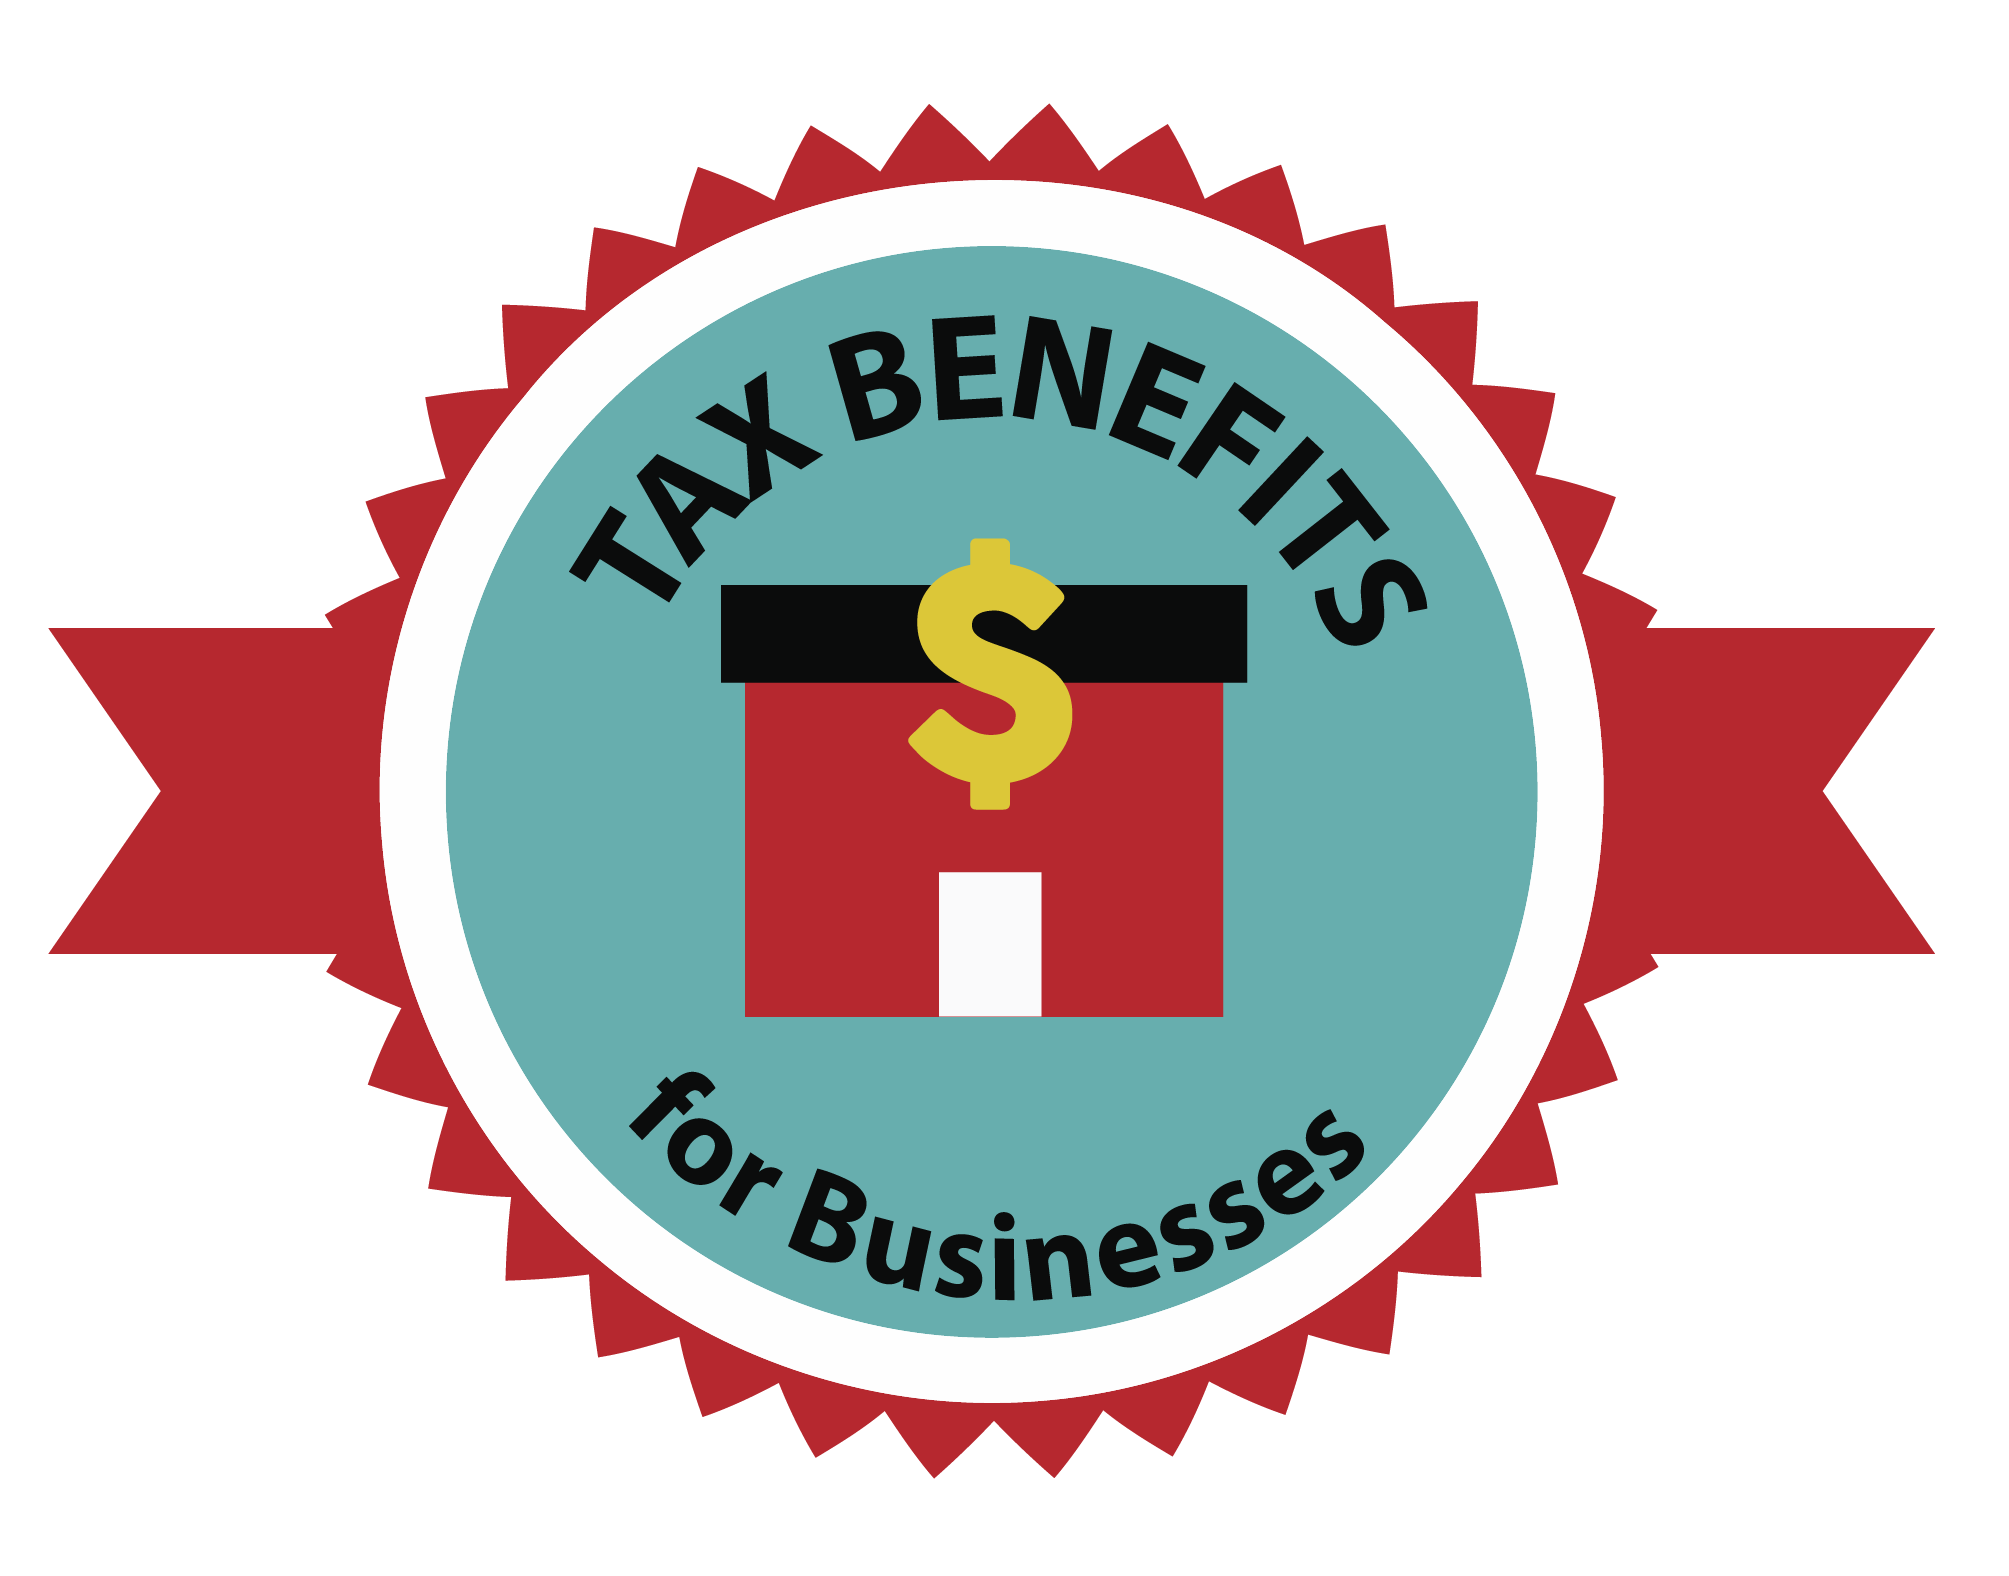 Tax Benefits - Businesses- gold sign copy.png